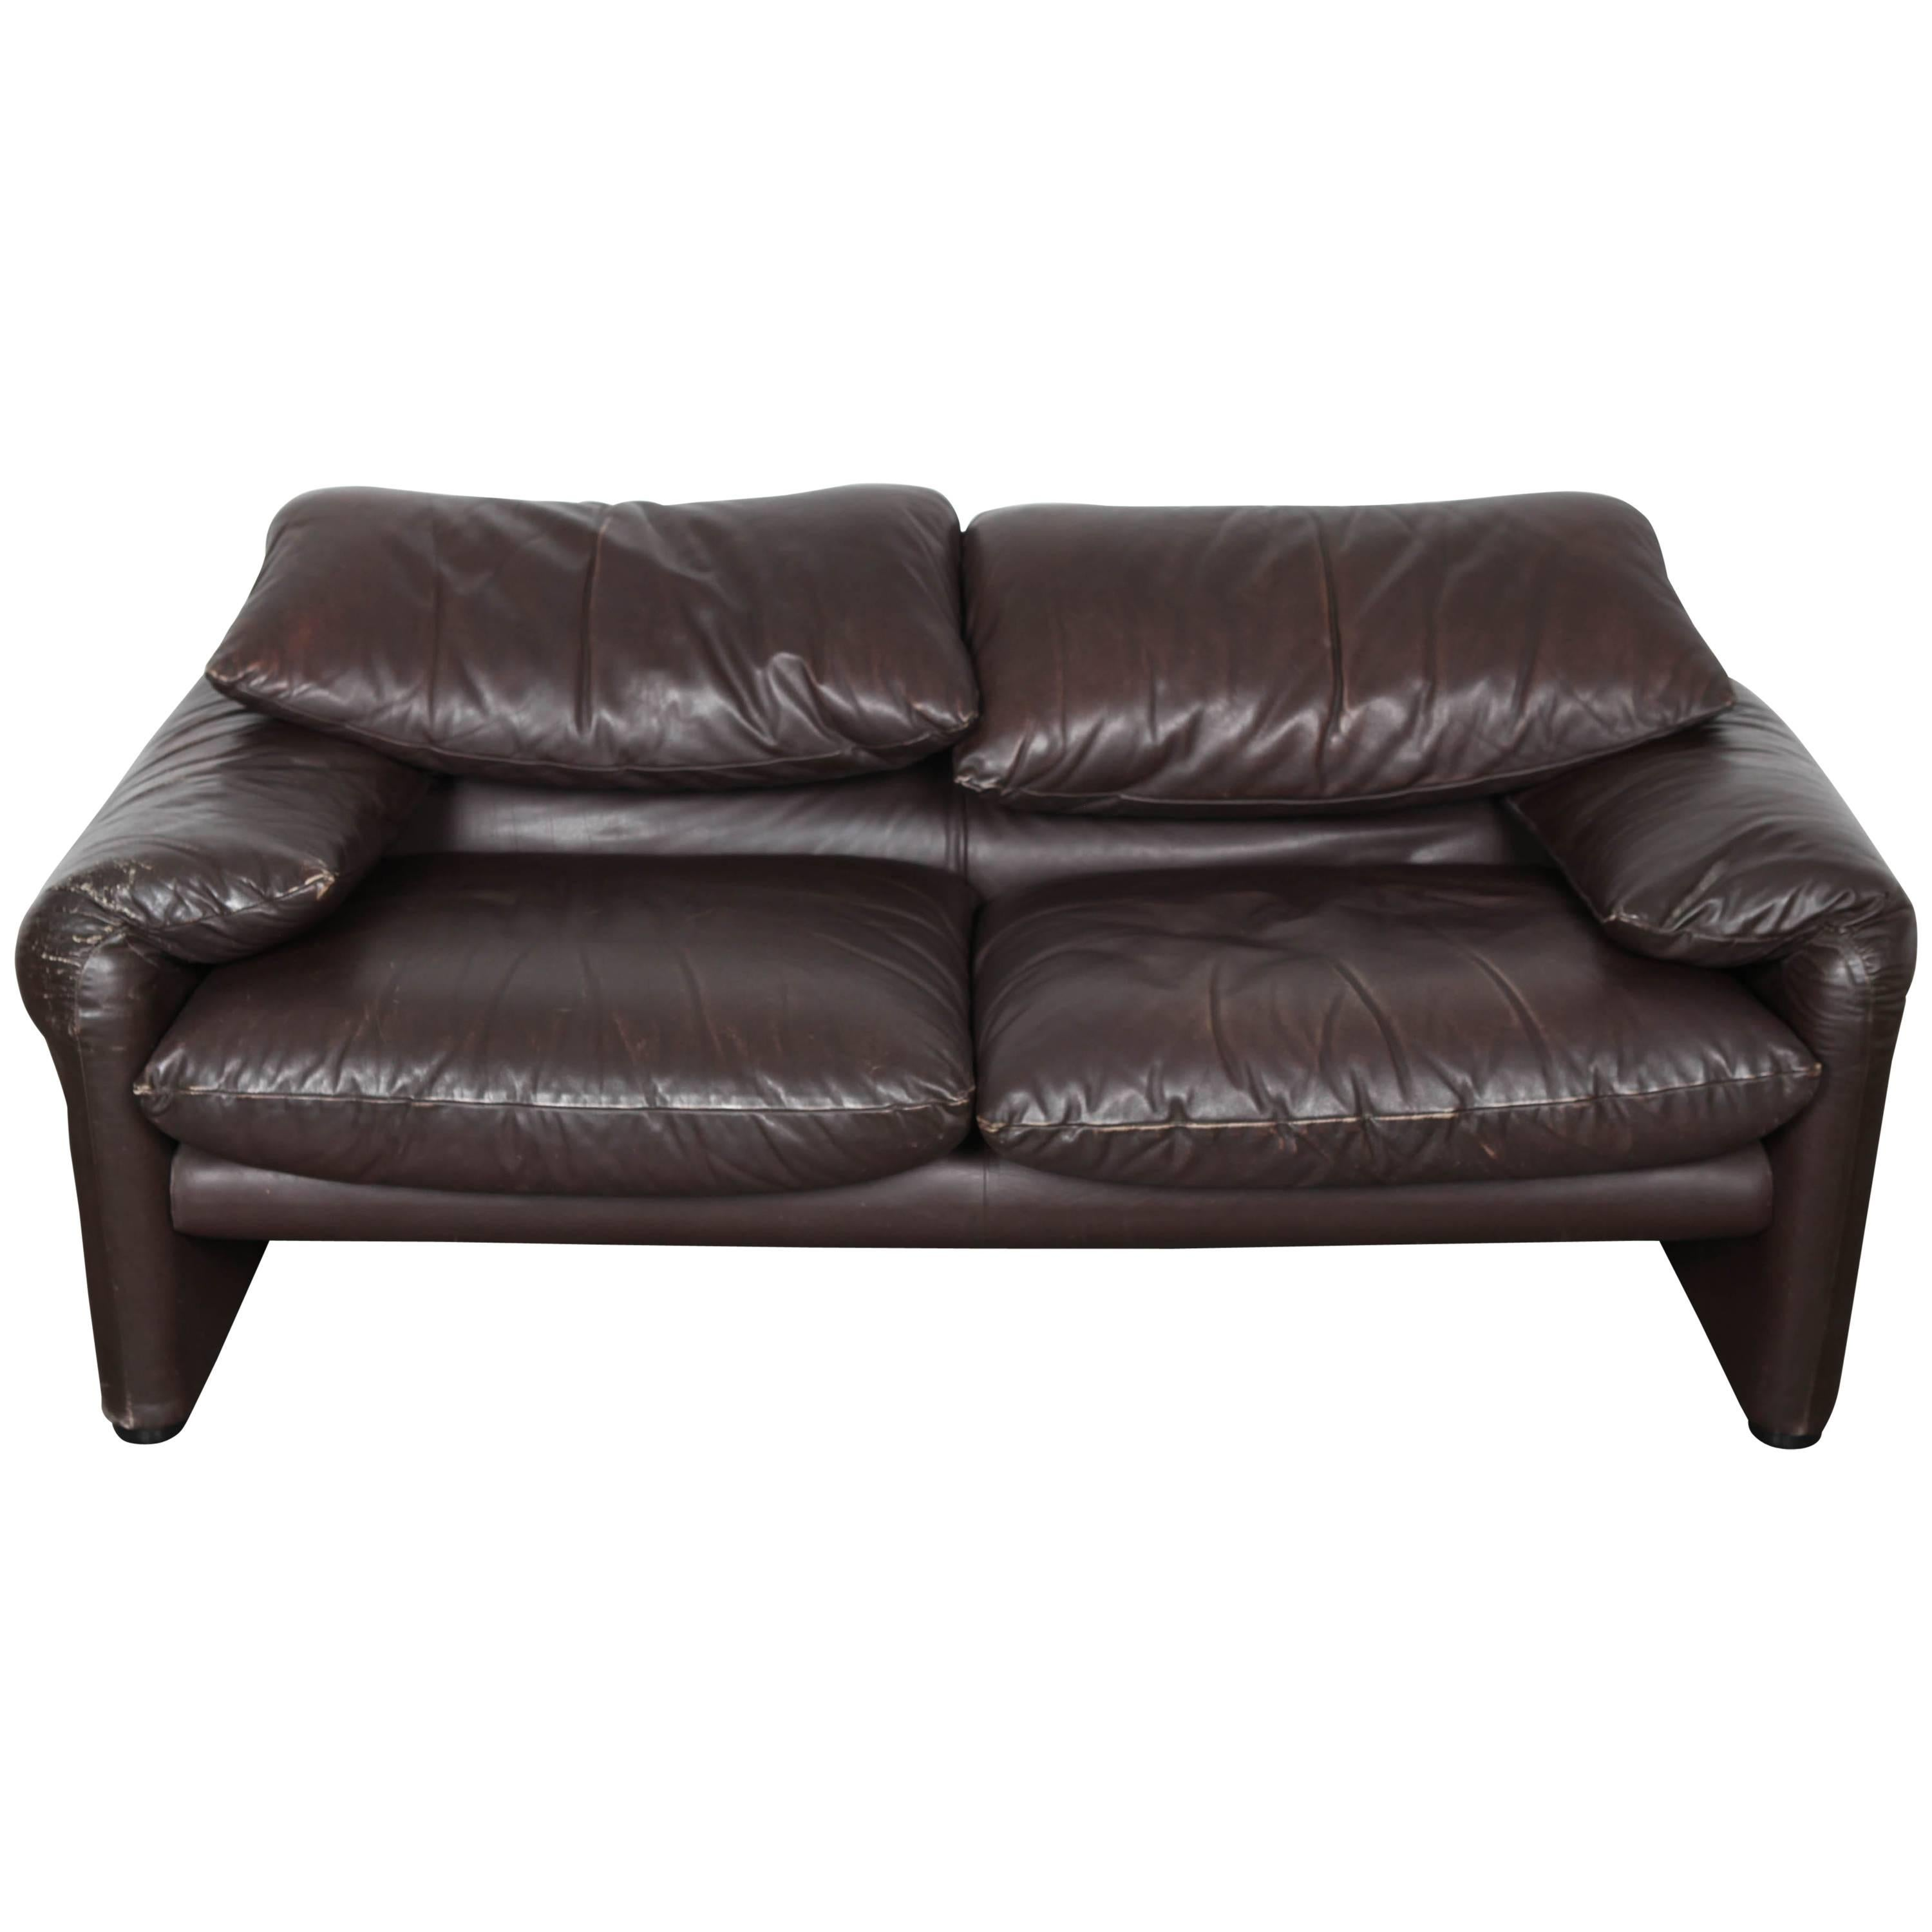 Brown Leather Sofa U0026quot;Maralungau0026quot; By Vico Magistretti With  Adjustable Headrest